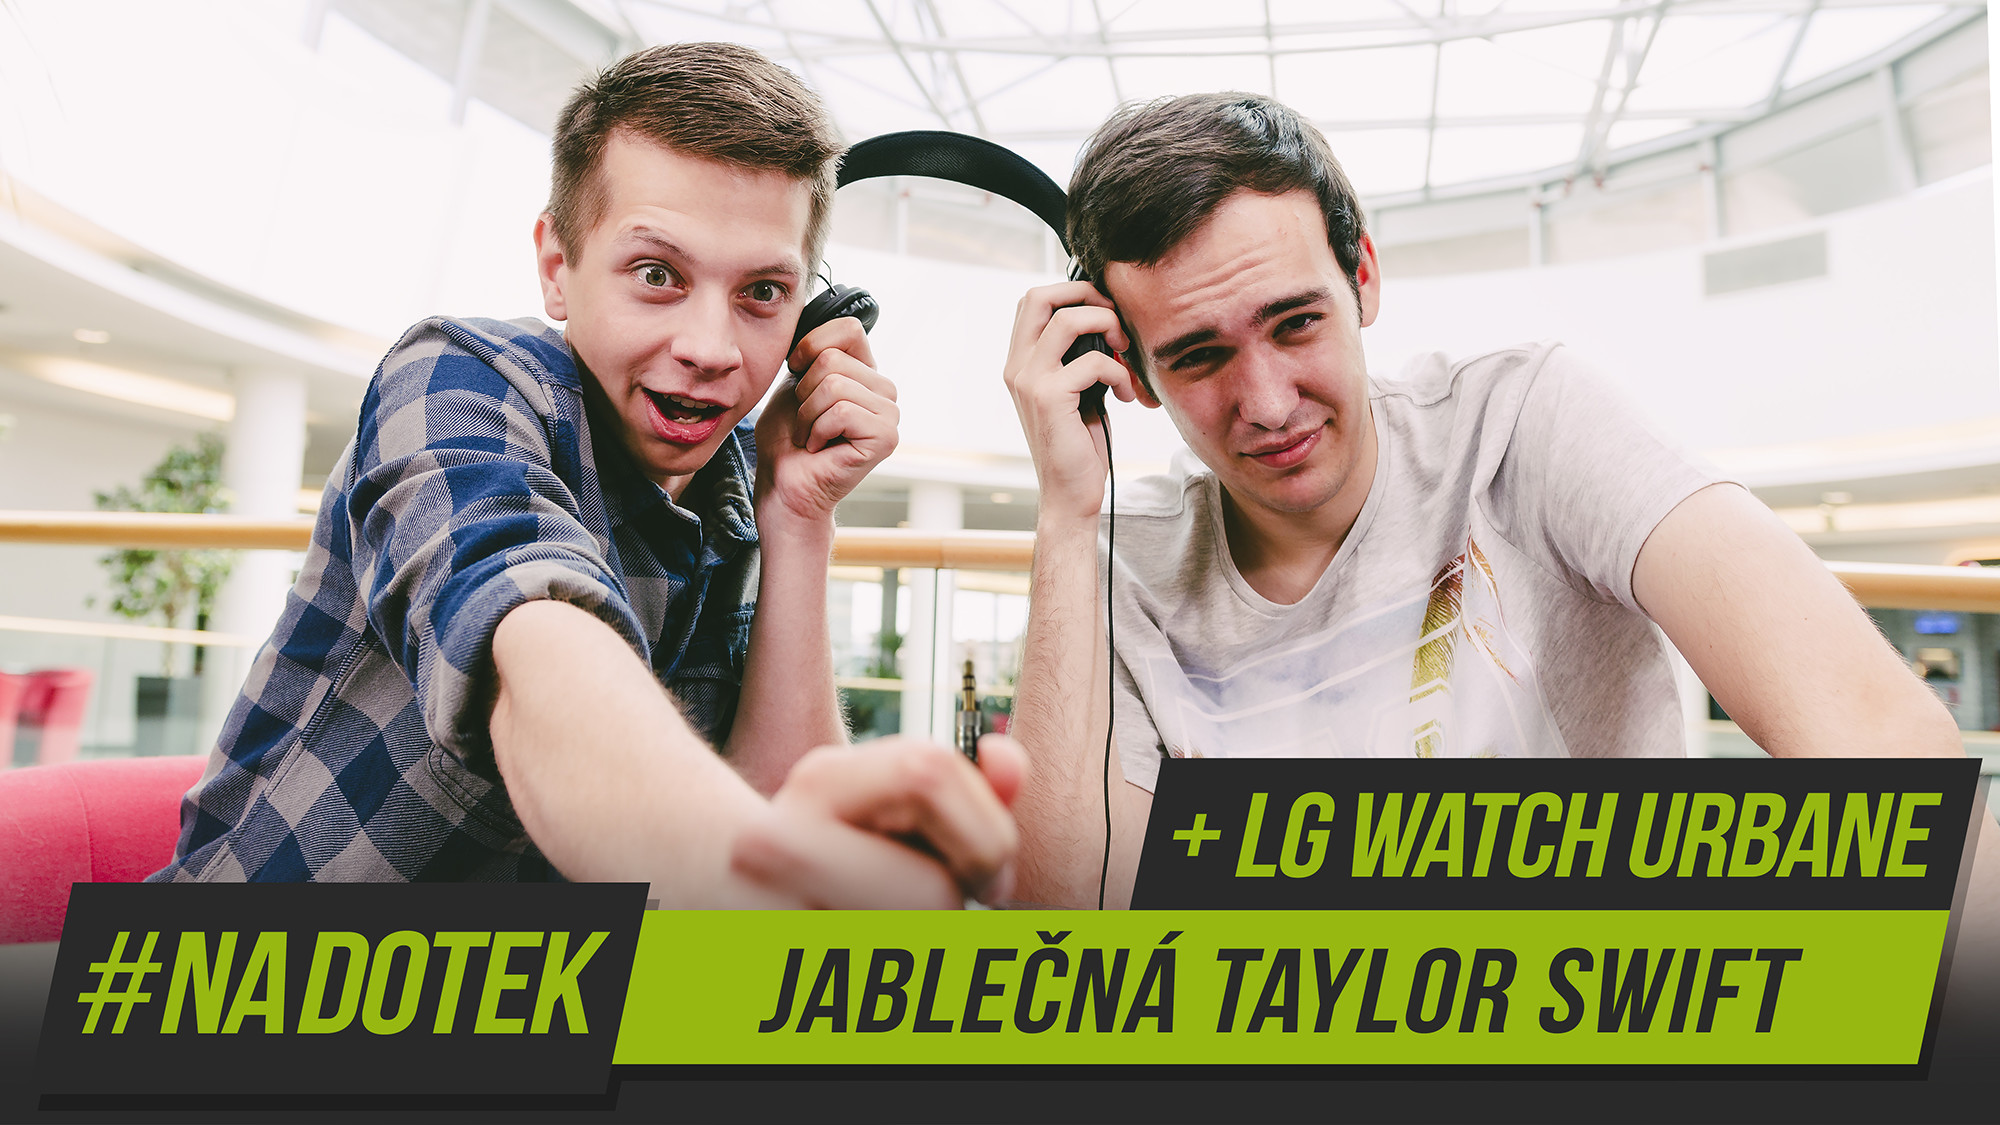 Na Dotek – Jablečná Taylor Swift + LG Watch Urbane